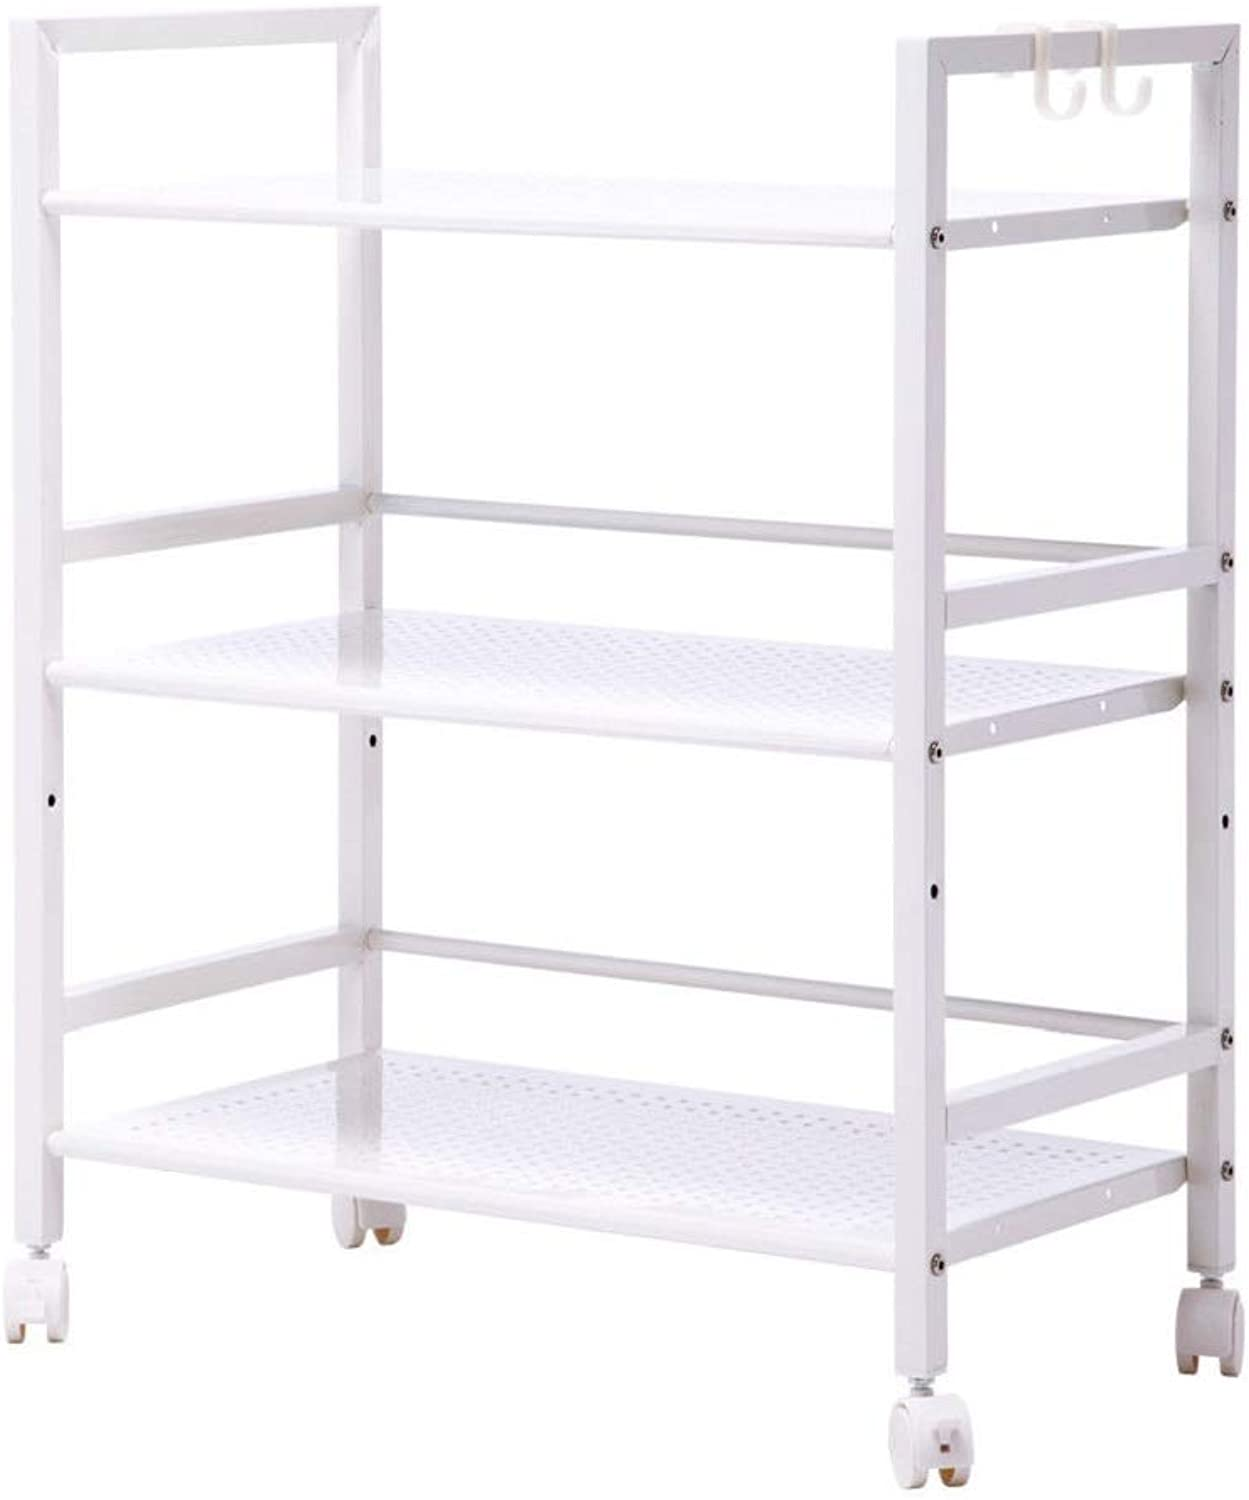 Wonderrun Trolley Cart 3Tier Storage White color Modern Honeycomb Hole Shelf for Rolling Kitchen Island Utility Rack Service Dining Home Organizer Remove